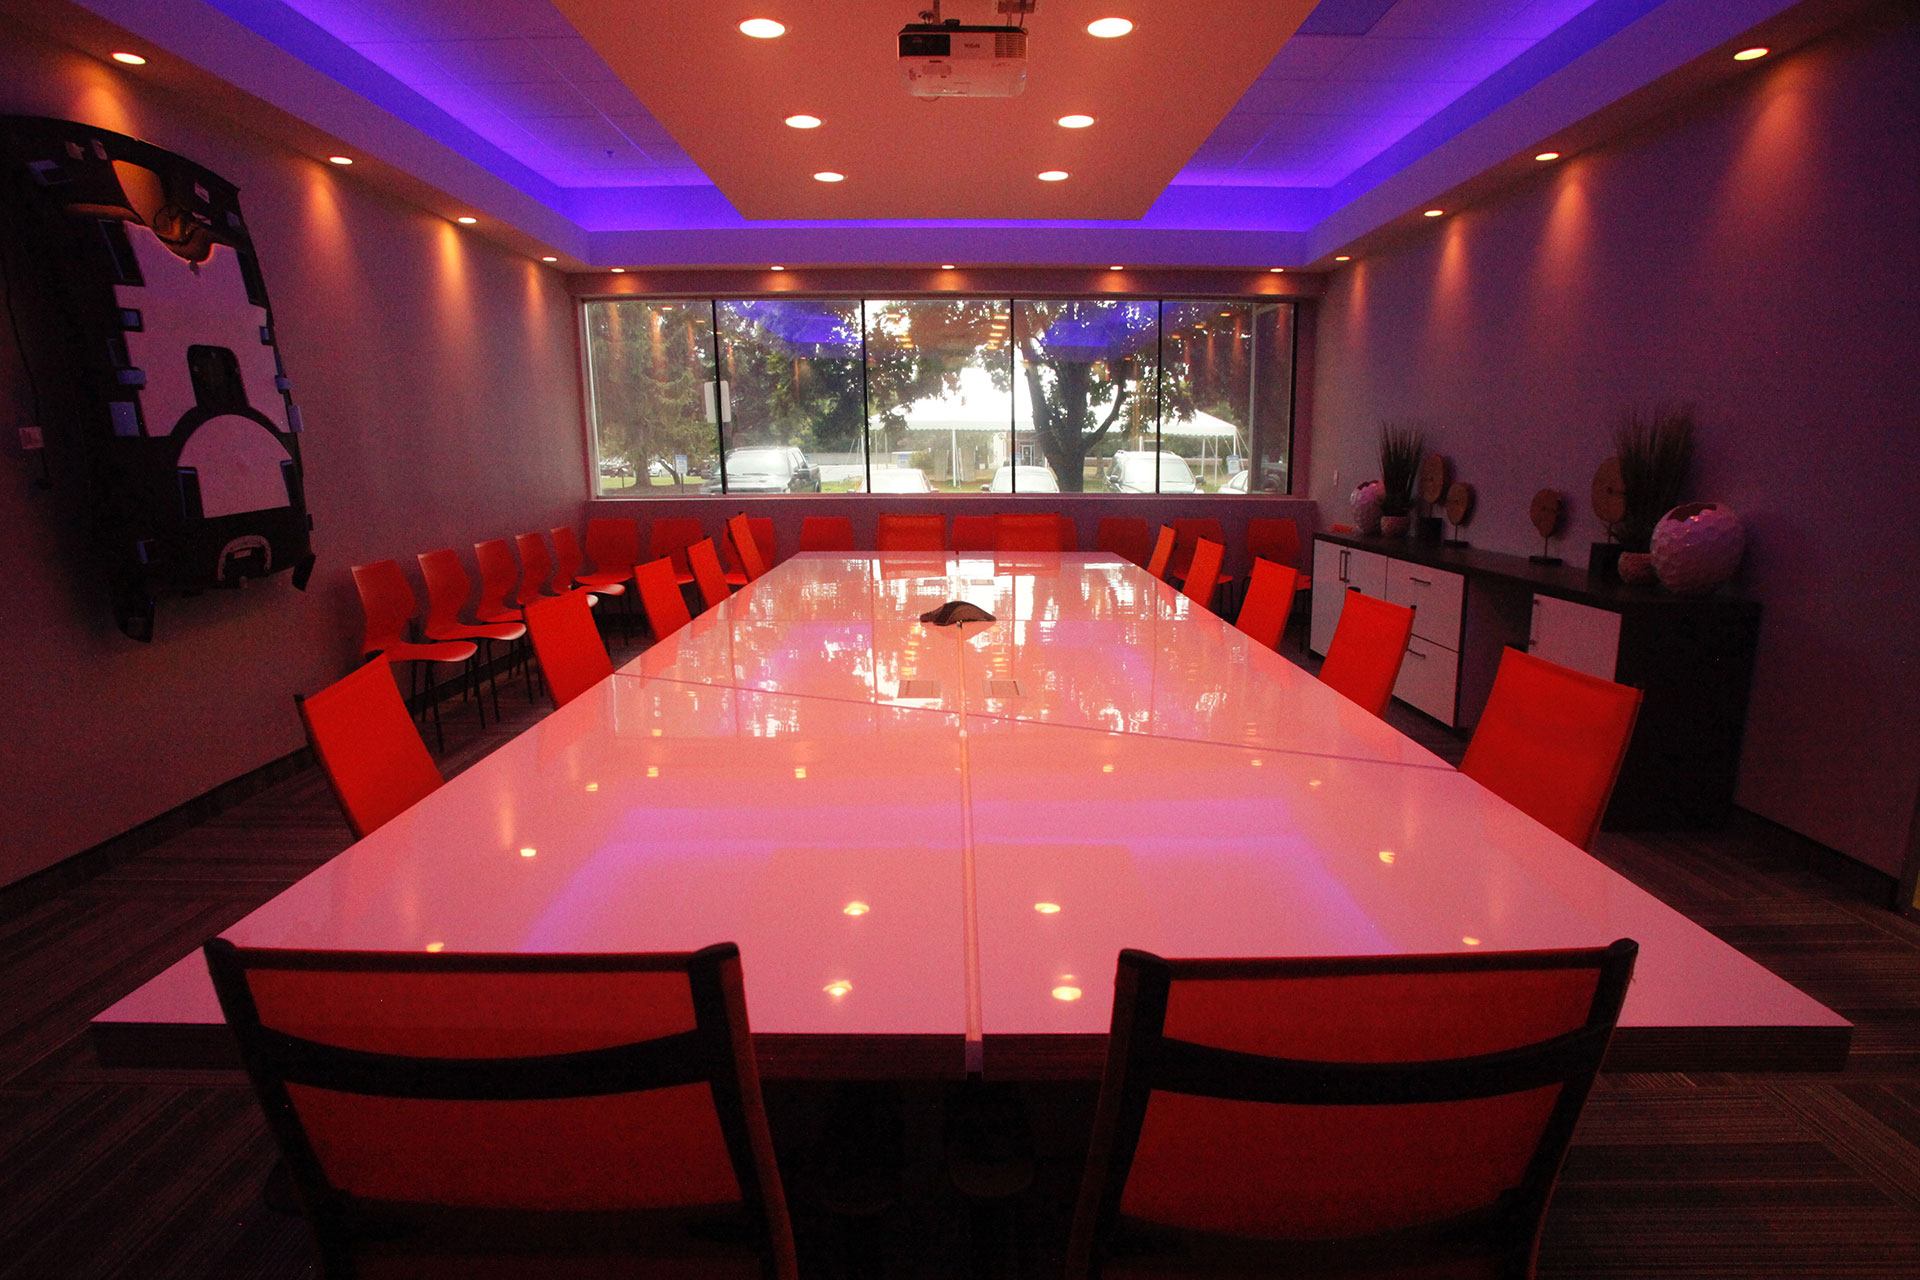 Conference room, custom table with high gloss, Solicore plastic laminate with reveals throughout the table - reflecting their corporate theme in the space. Includes plastic laminate credenza and countertops to match.